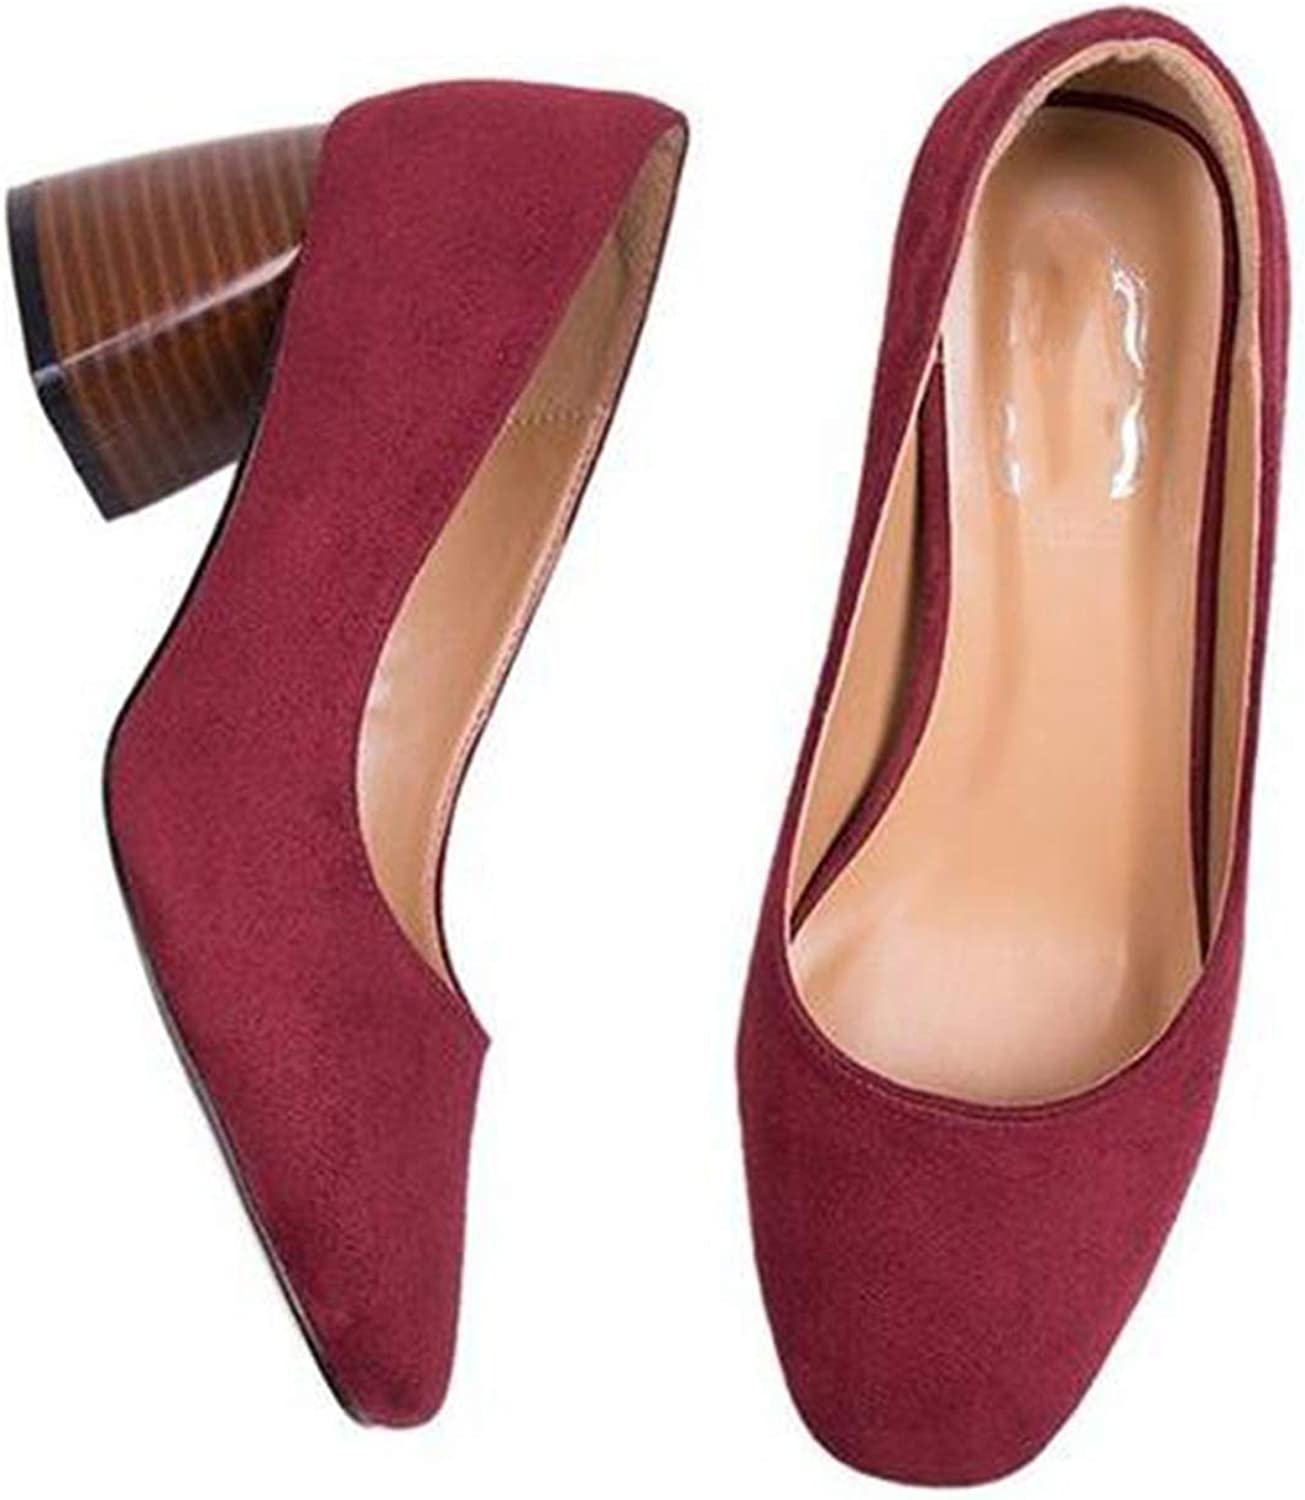 FINDYOU-pumps shoes Coarse Heel high Heel Round Head Single shoes Woman and Shallow Mouth Spring.